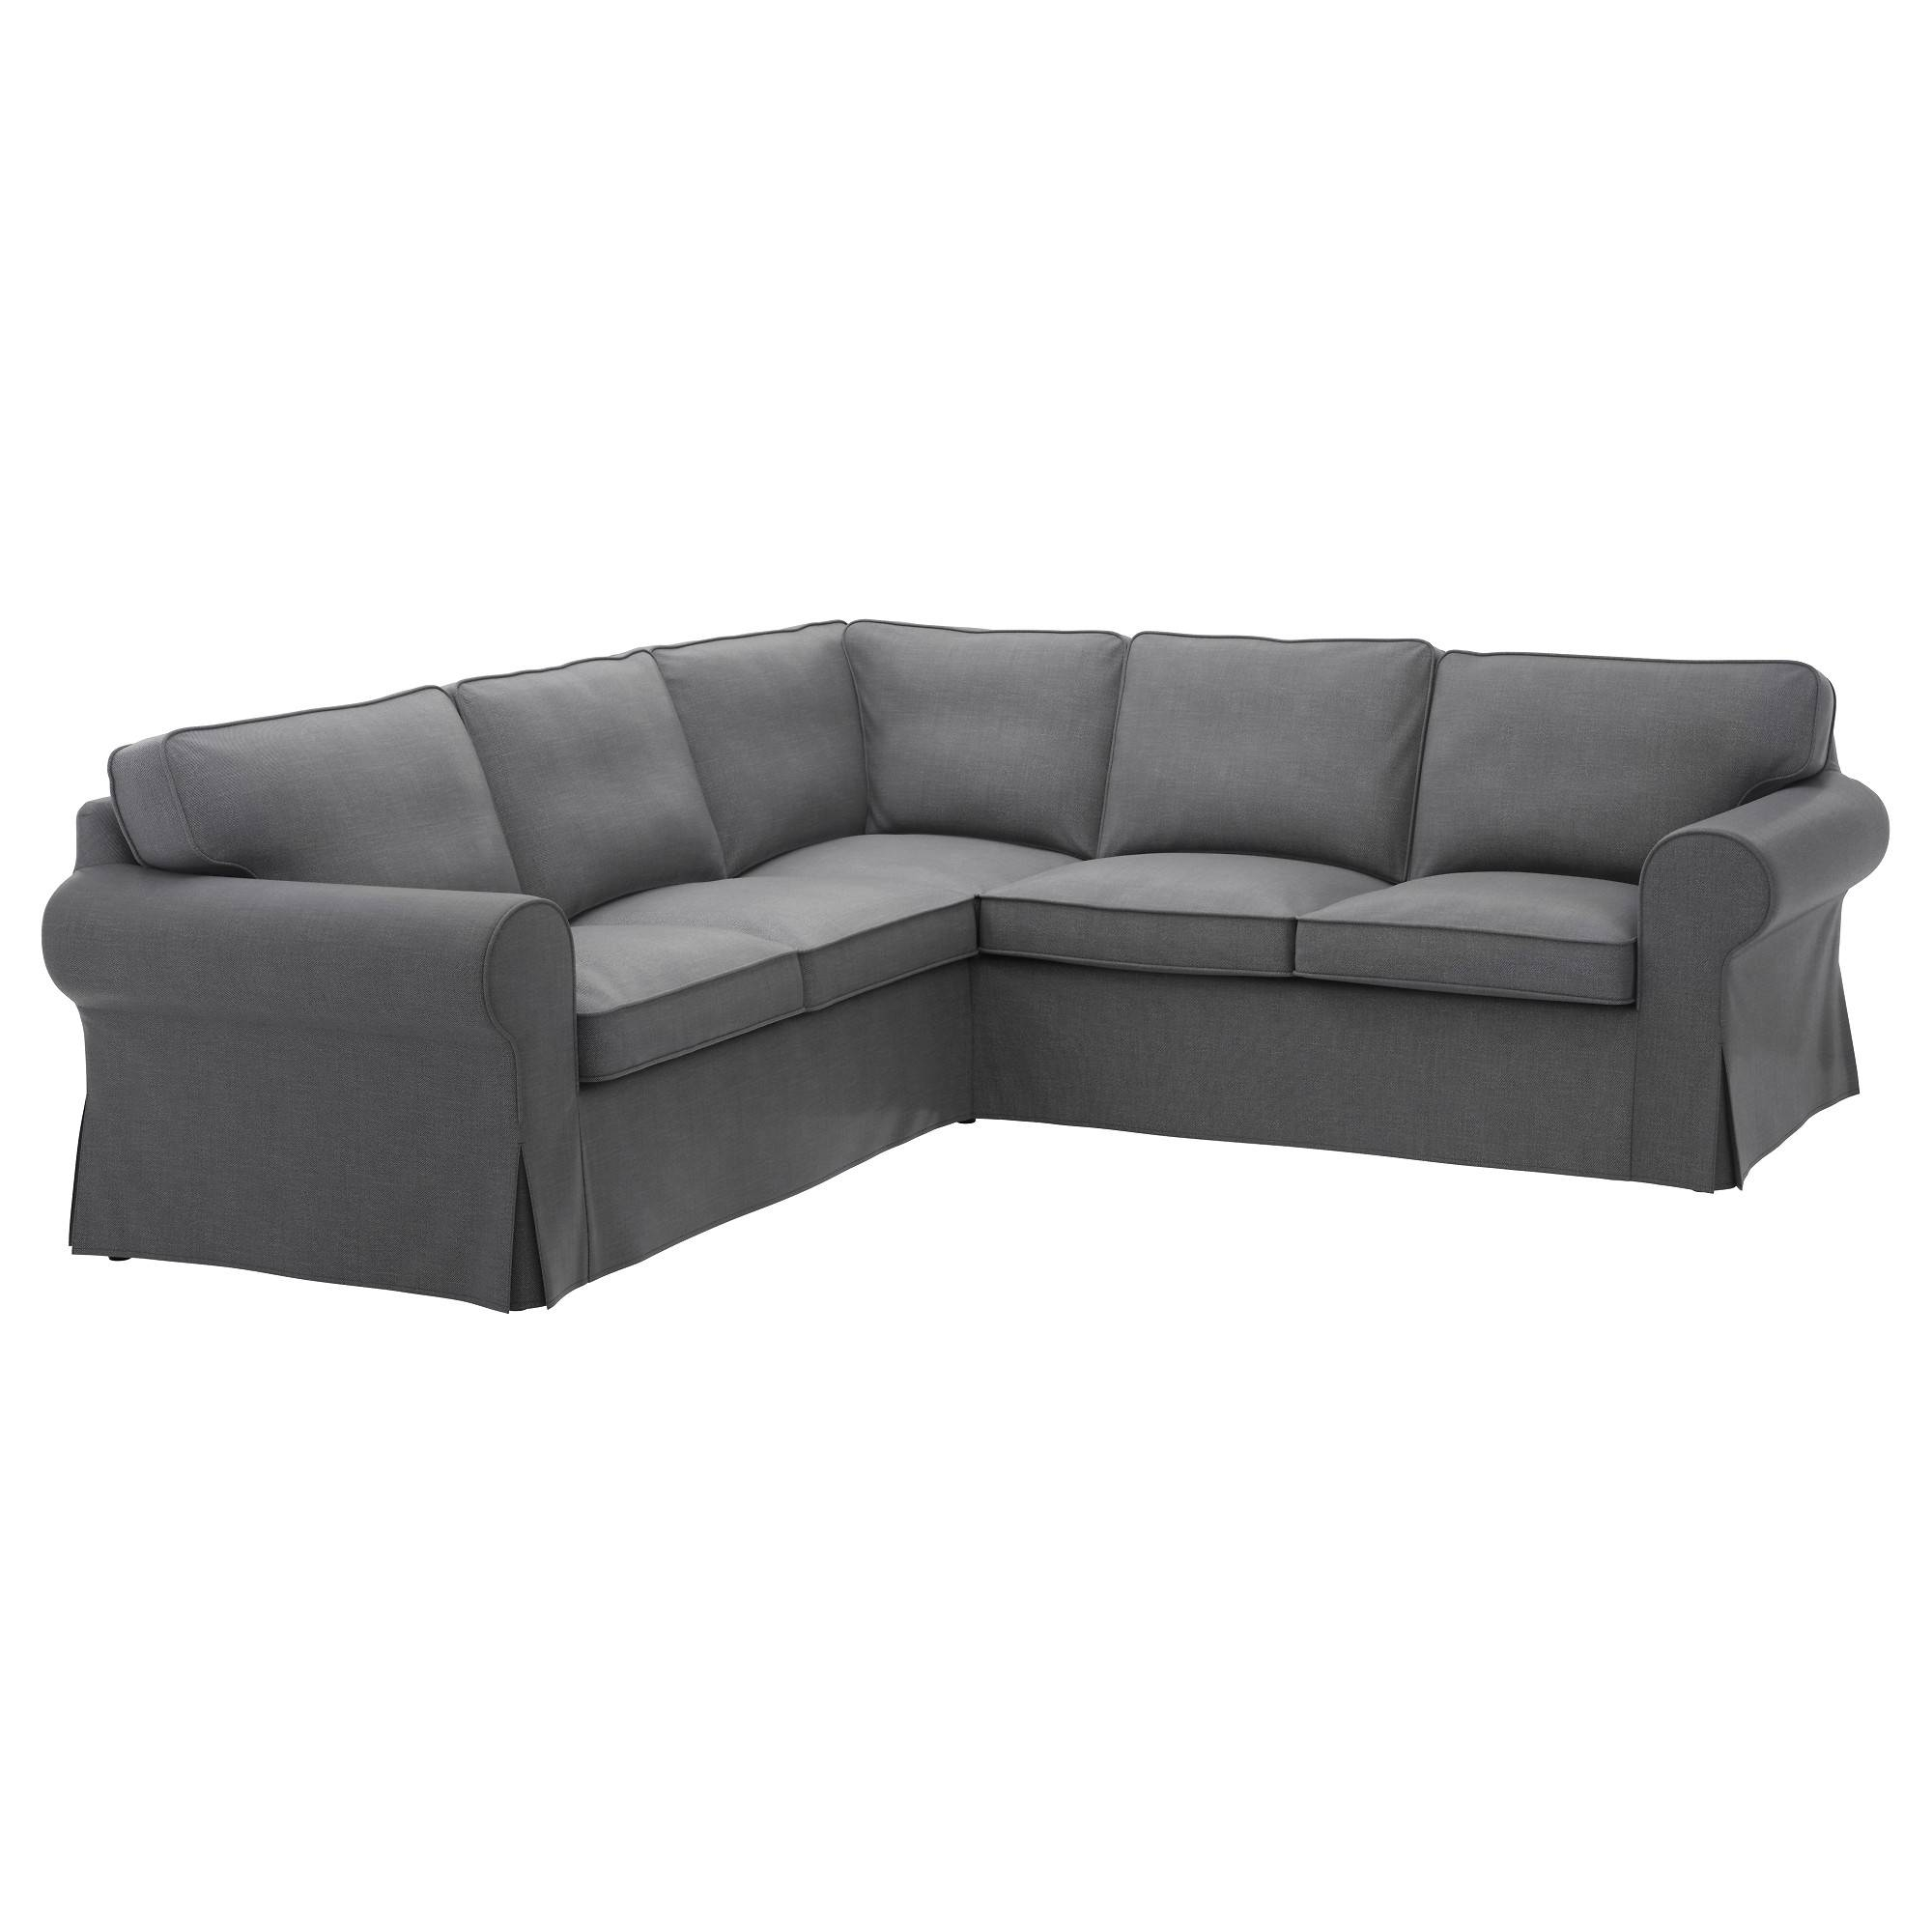 Fabric Sectional Sofas - Ikea within Funky Sofas For Sale (Image 5 of 30)